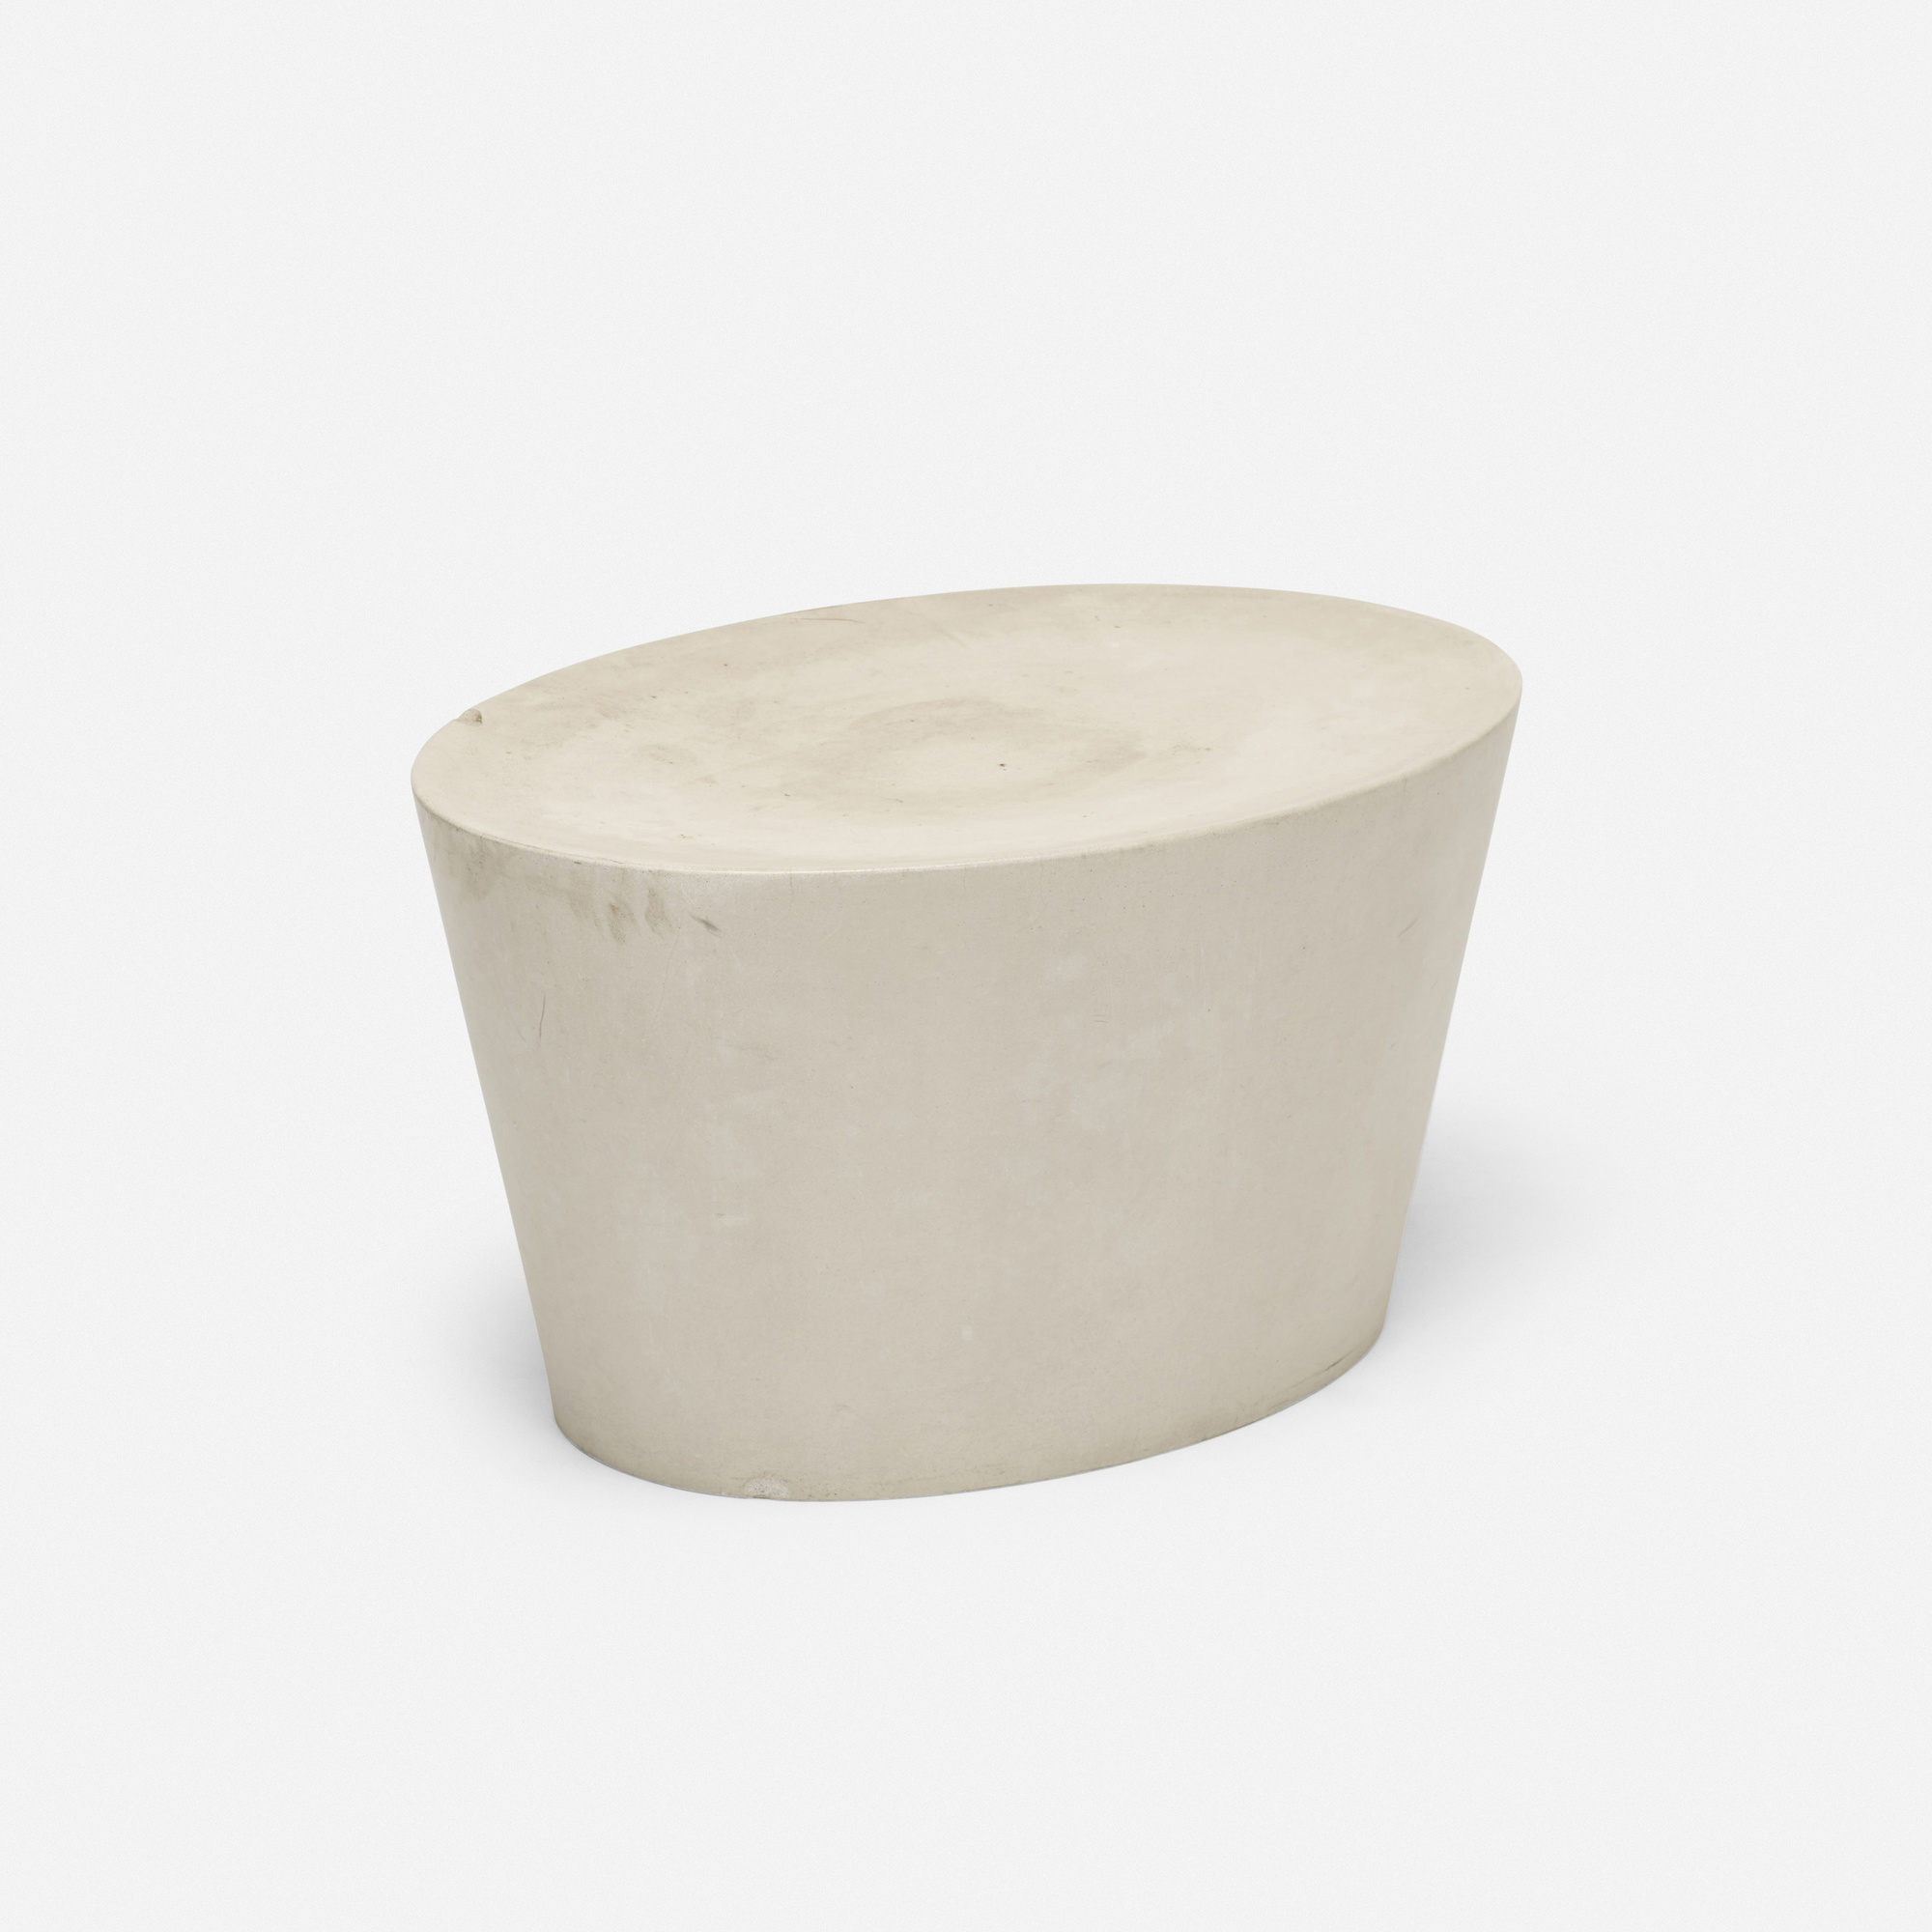 511: Maya Lin / Stone stool (1 of 2)